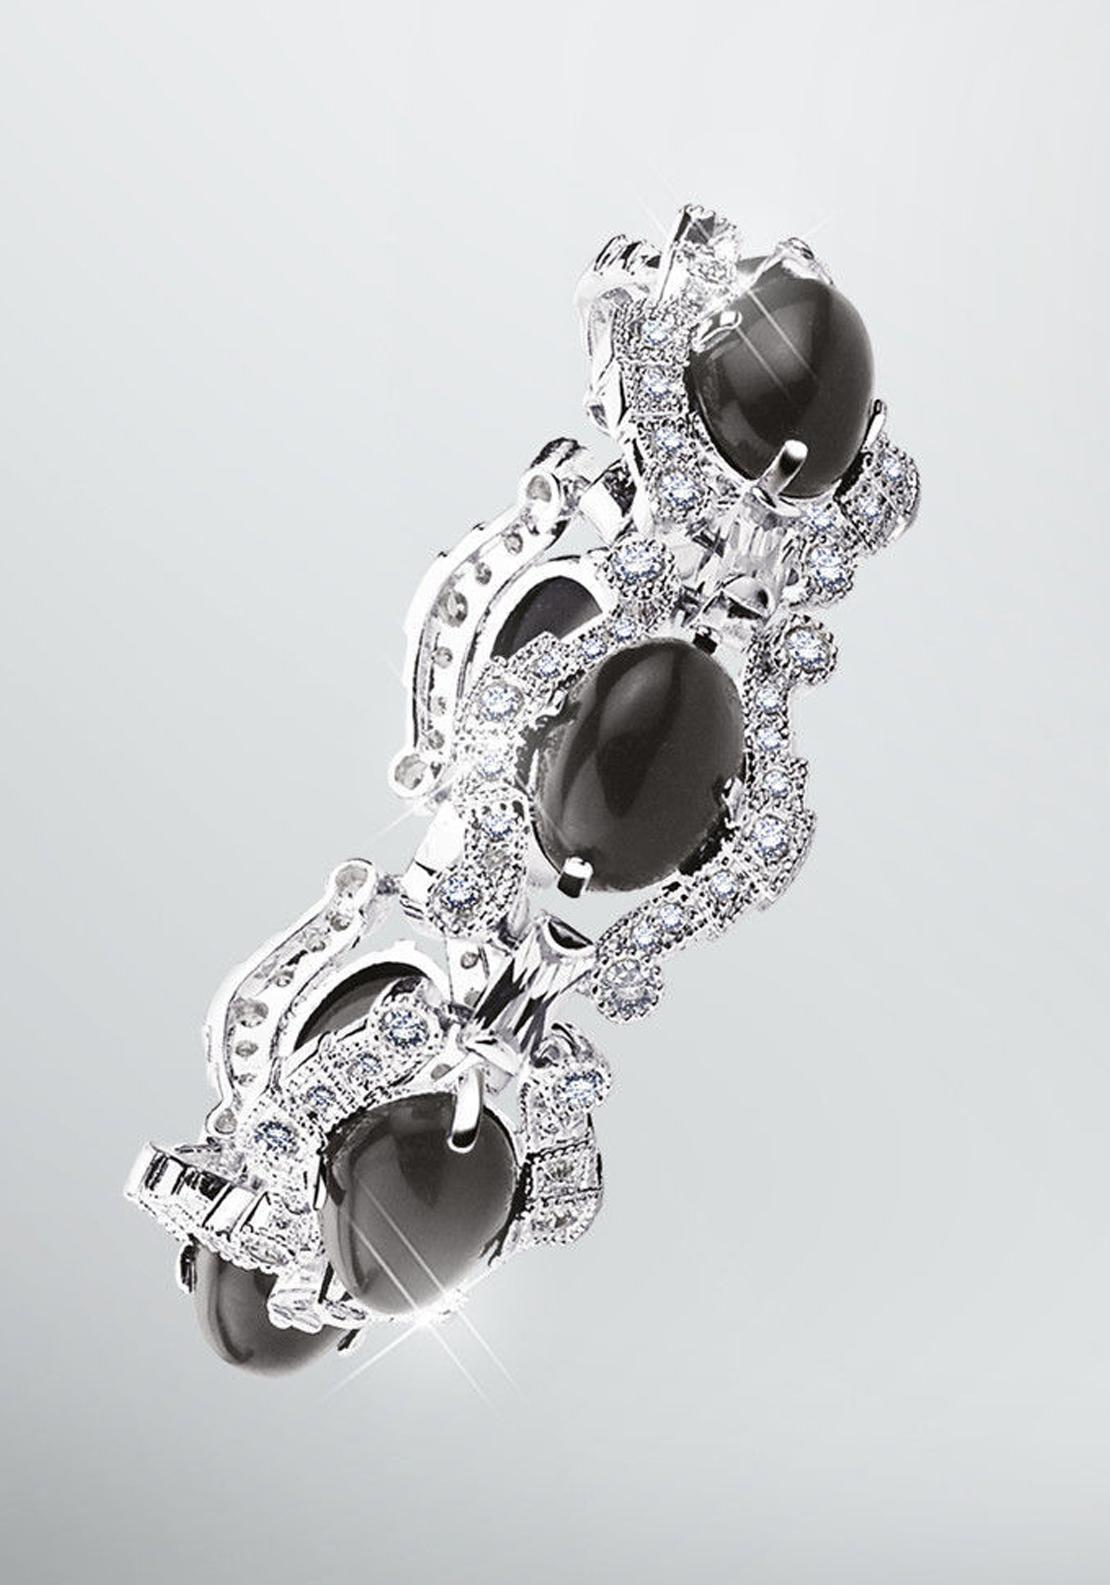 Newbridge Greta Garbo Pearl Bracelet, Crystal and Black